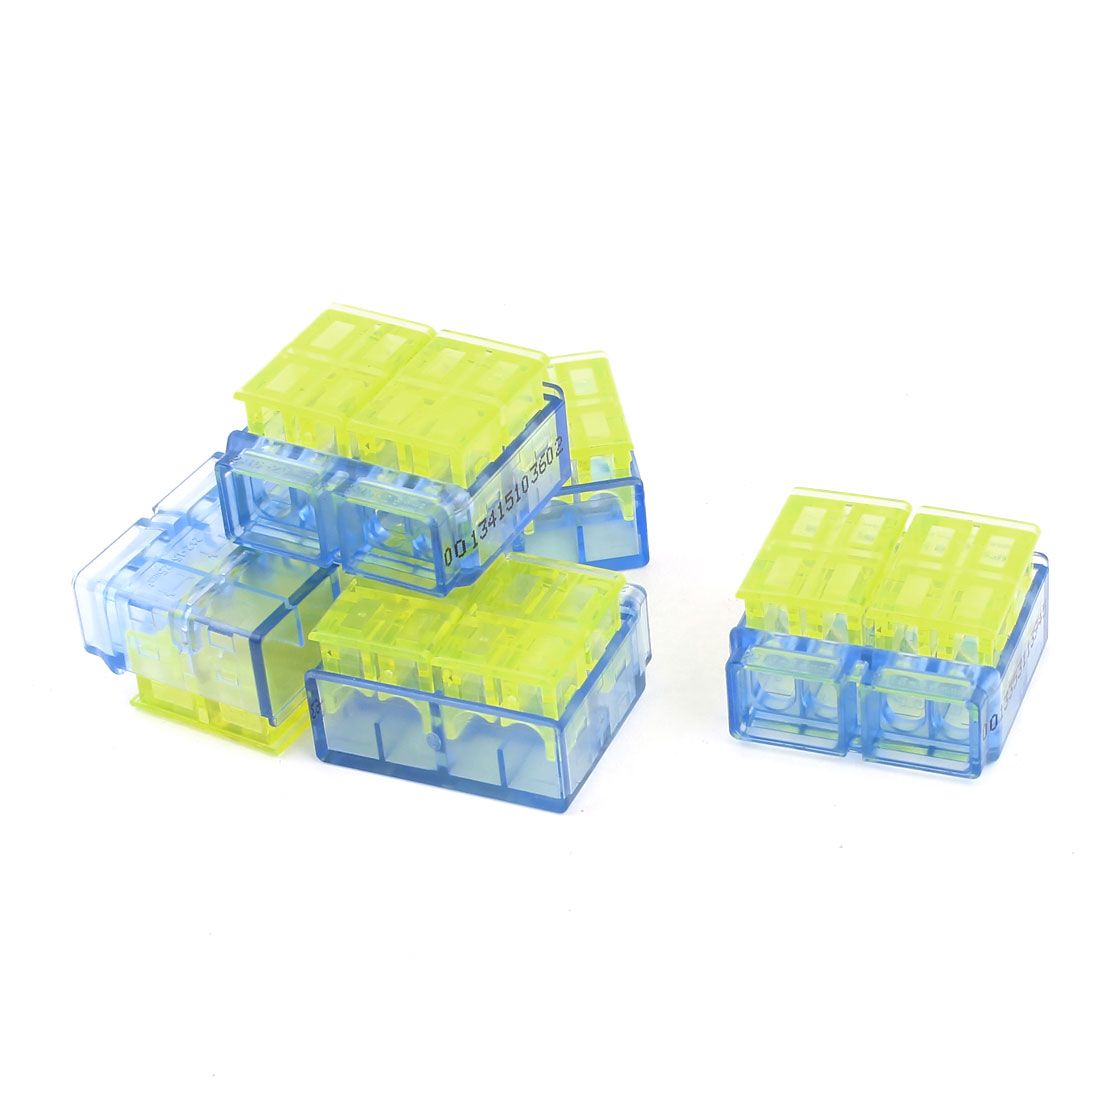 5 Pcs 1.0-1.5mm2 1.5-2.5mm2 I-Clamp Wire Connector Case Yellow Clear Blue